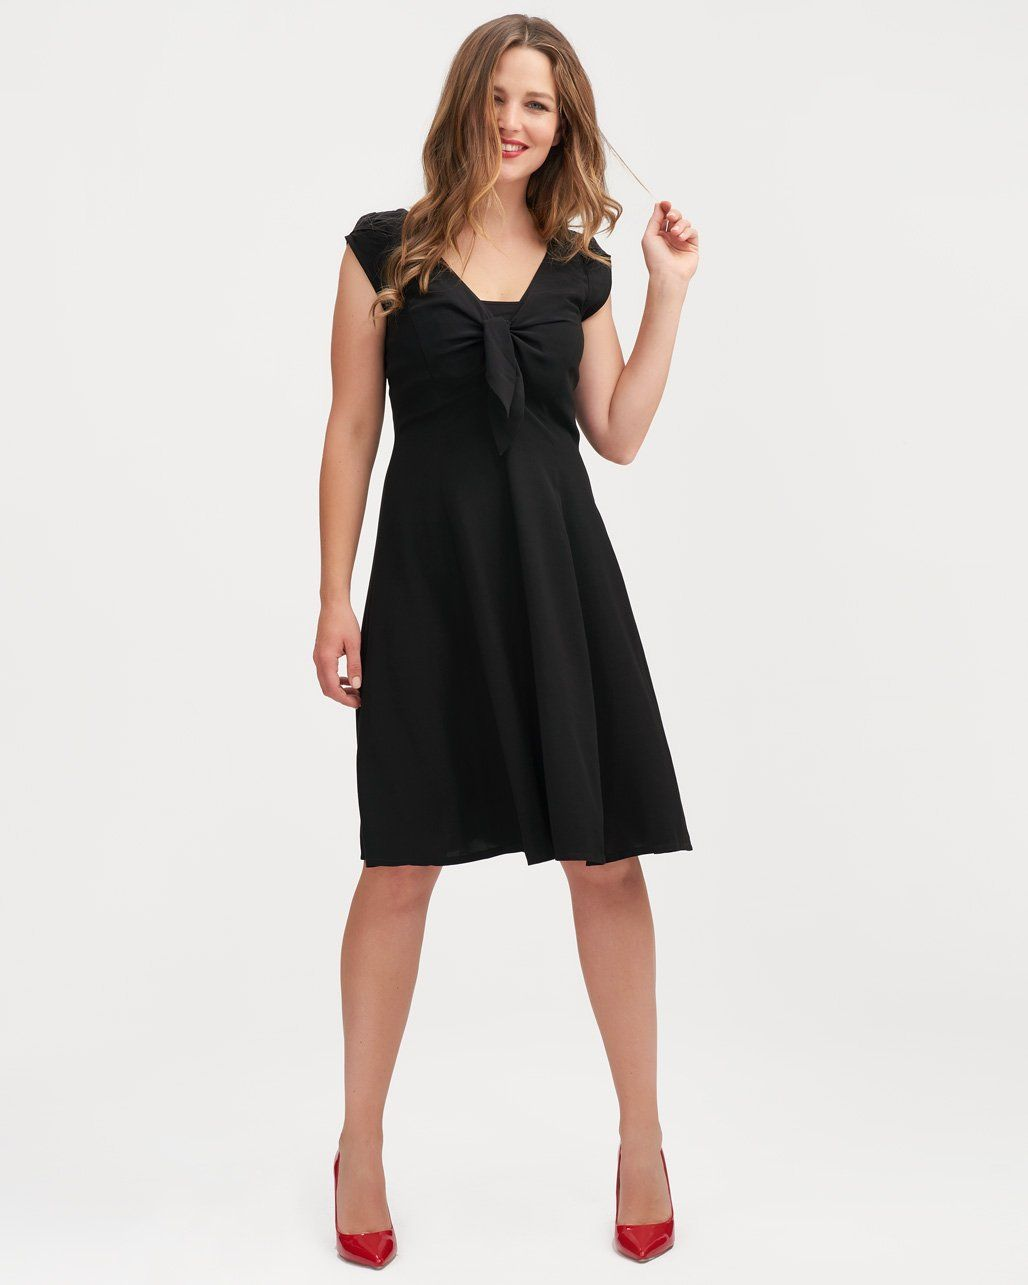 724f69b0ff235 Gorgeous black breastfeeding dress that's something a little special for  that meeting, party or wedding?Whichever way you wear it, this little black  number ...